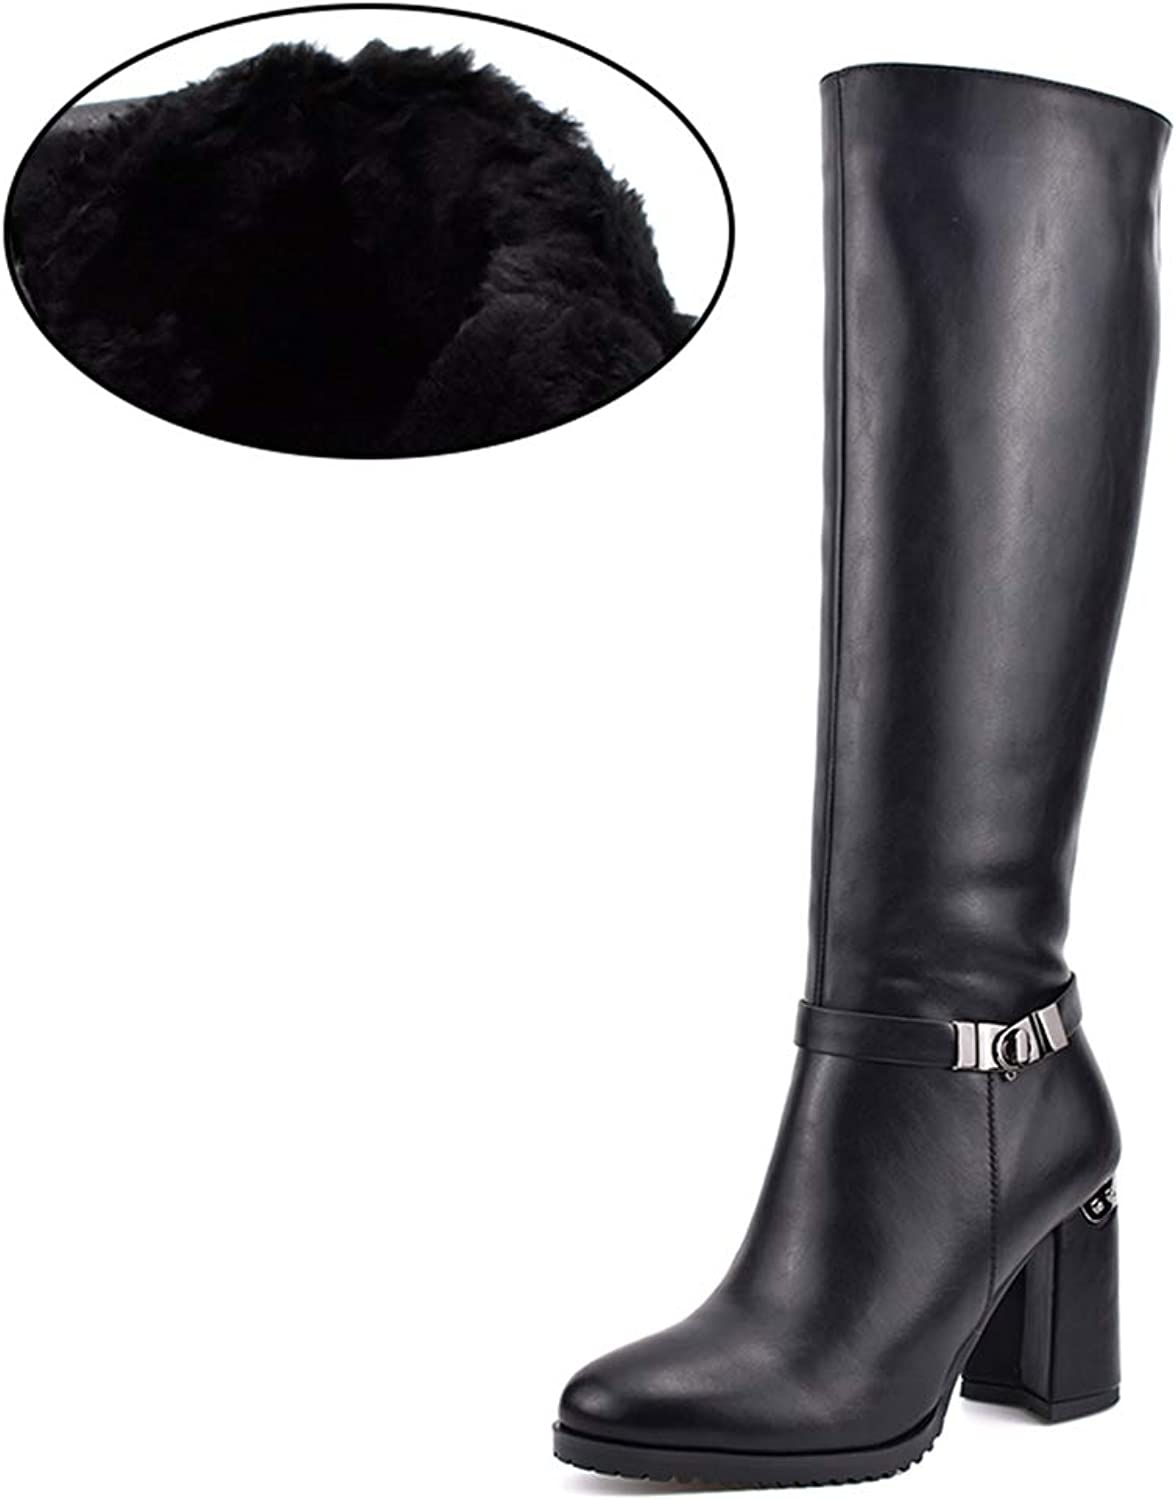 T-JULY Women's Autumn Winter Thick Plush Warm Knee High Boots Zip Fashion Hoof Heels with Metal Buckle Elegant shoes